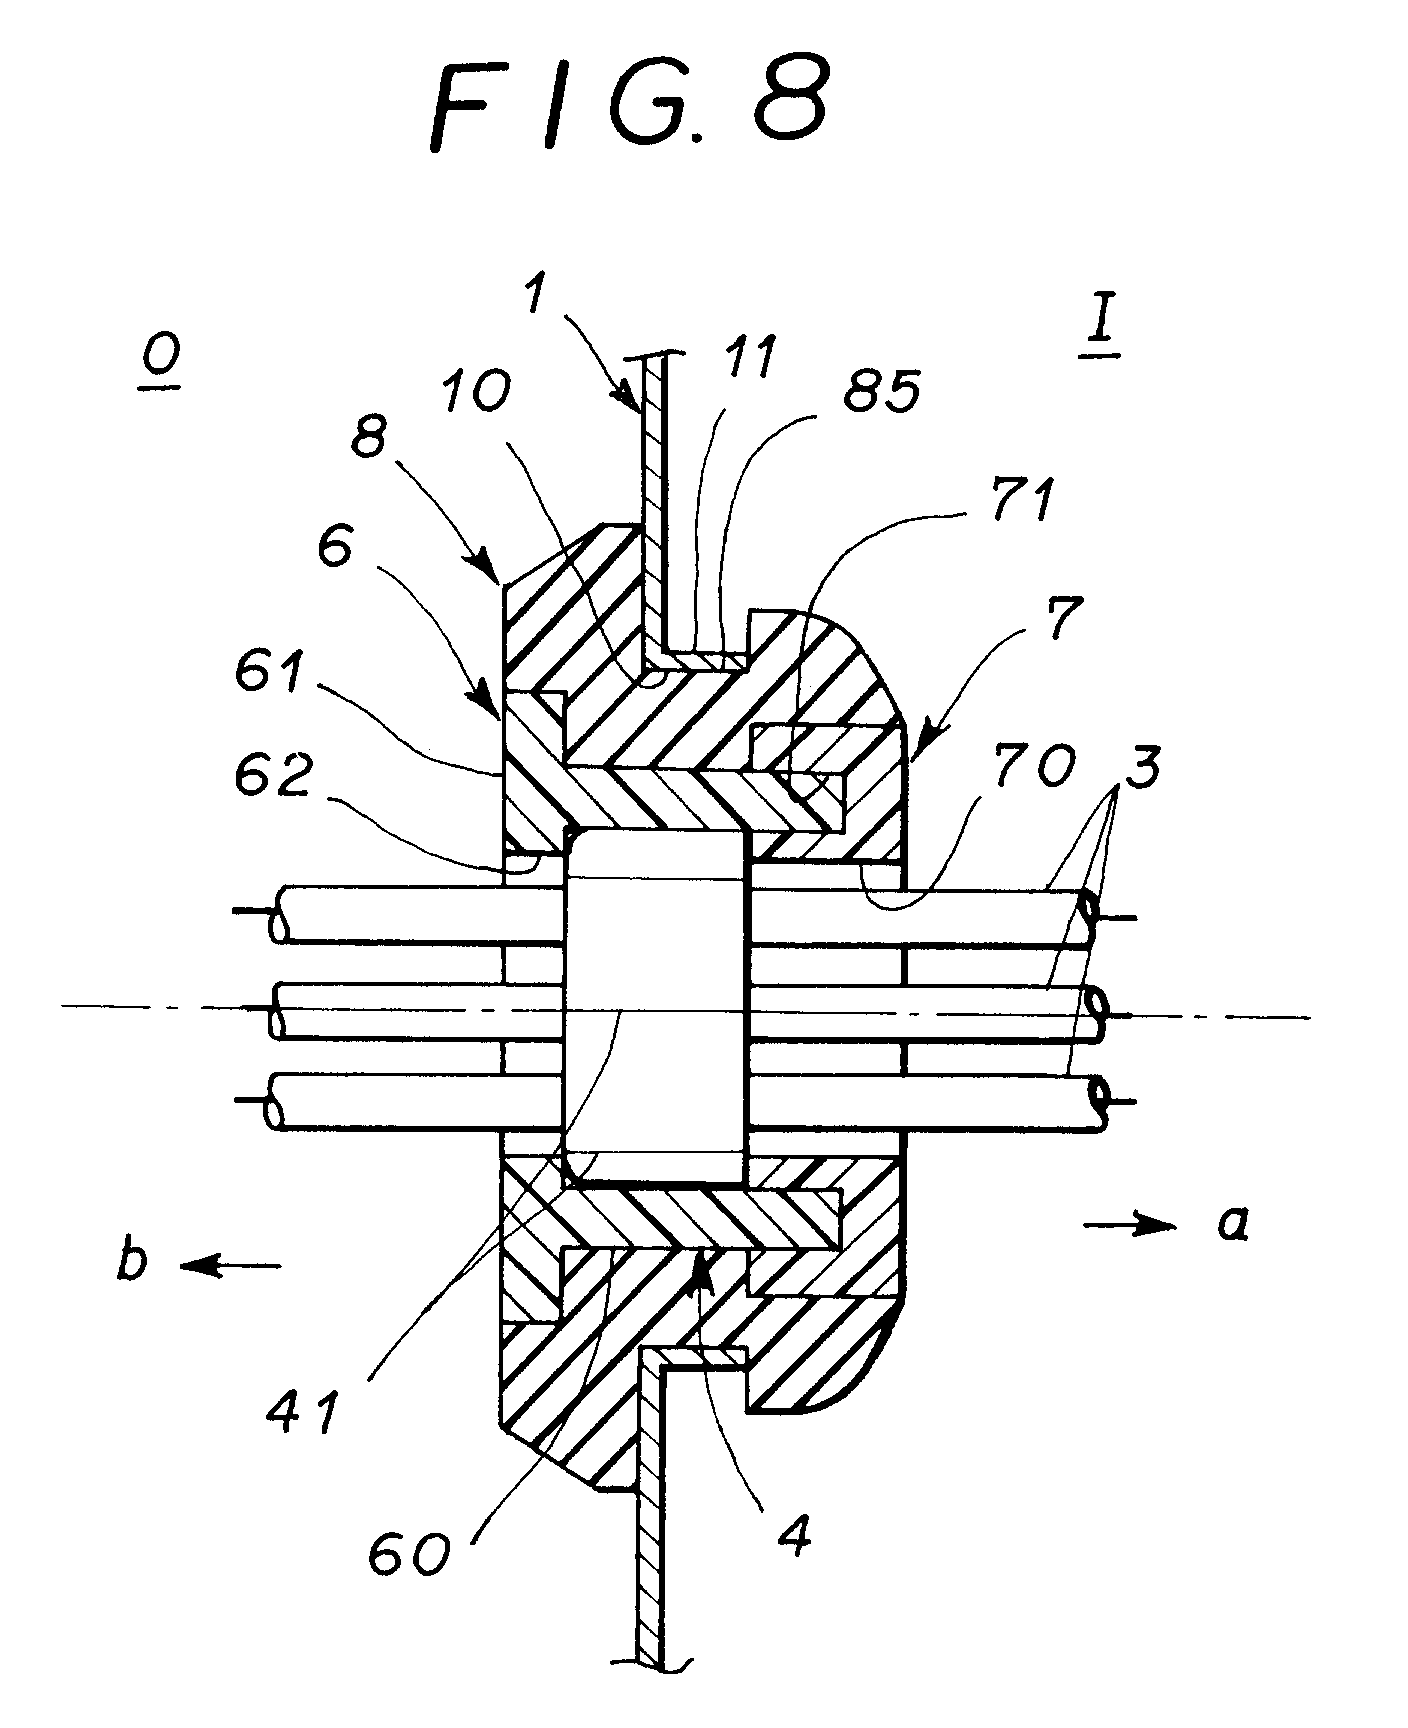 patent ep0580130a1 - lead-wire grommet